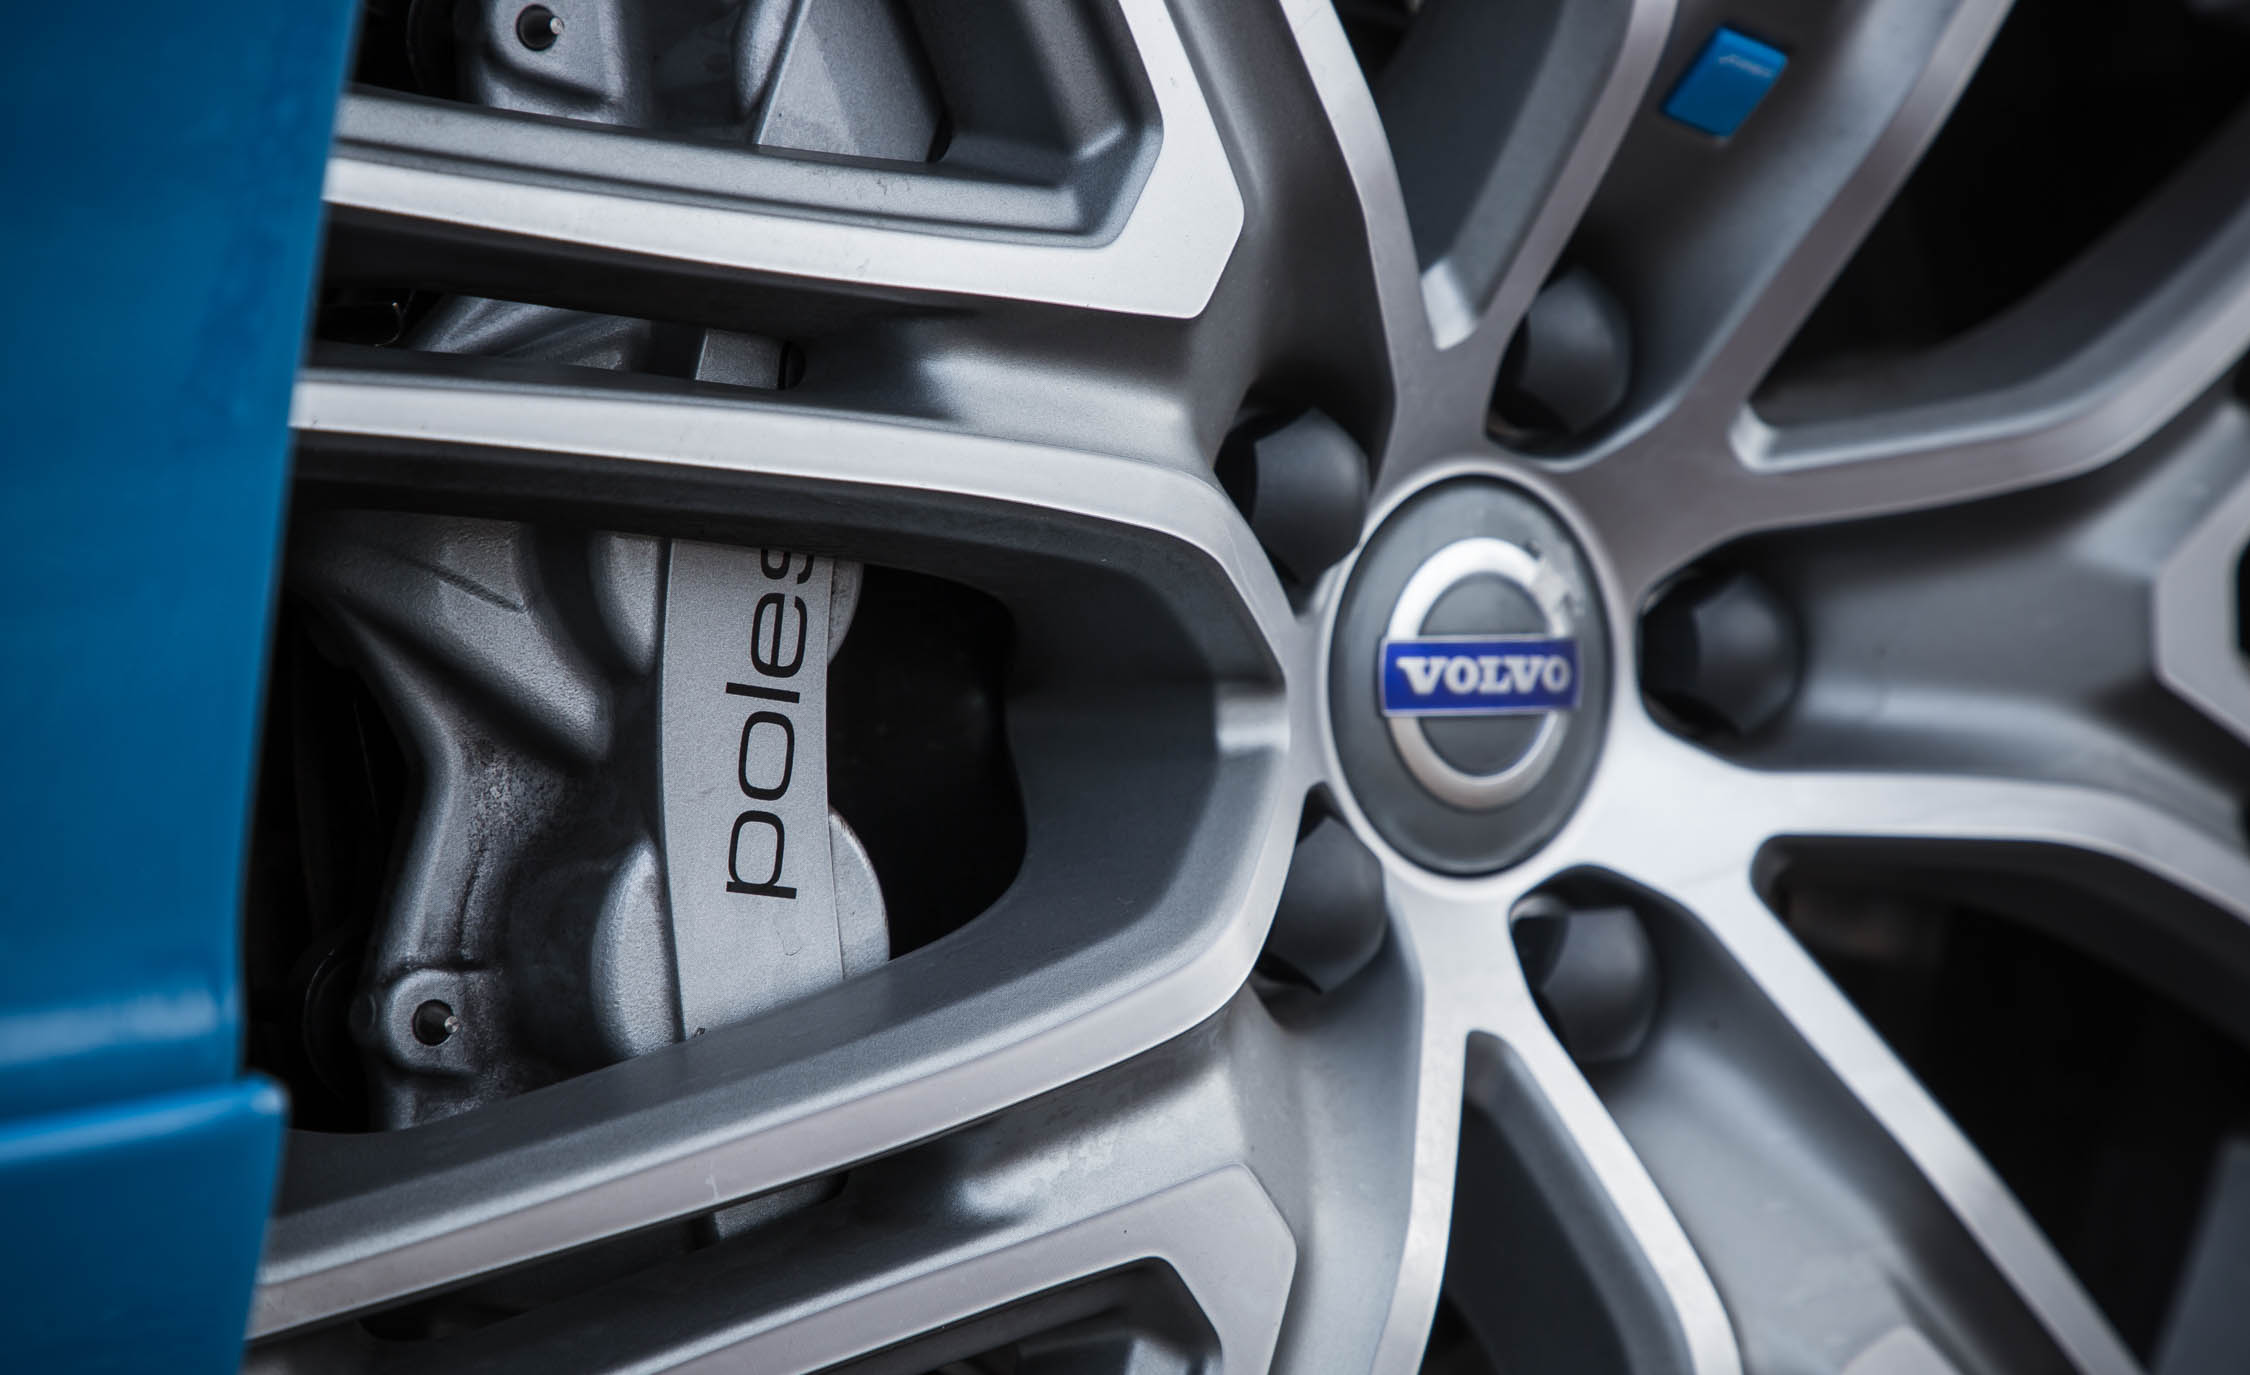 2017 Volvo V60 Polestar Exterior View Wheel Velg (View 21 of 53)